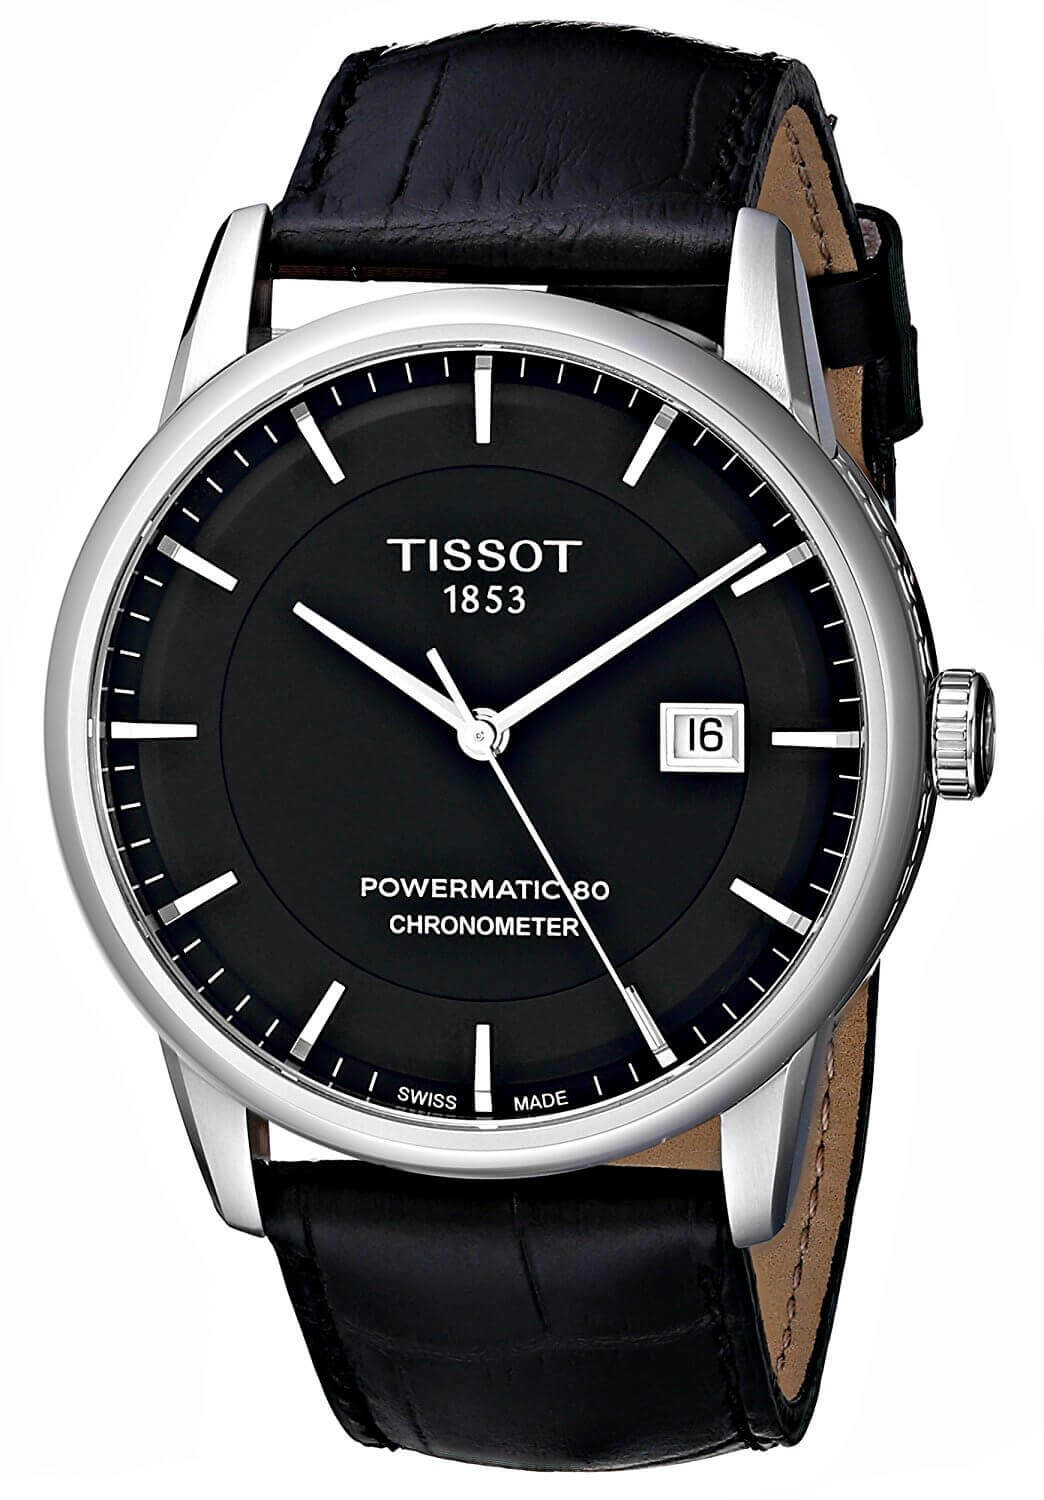 1. Tissot Powermatic80 Chronometer